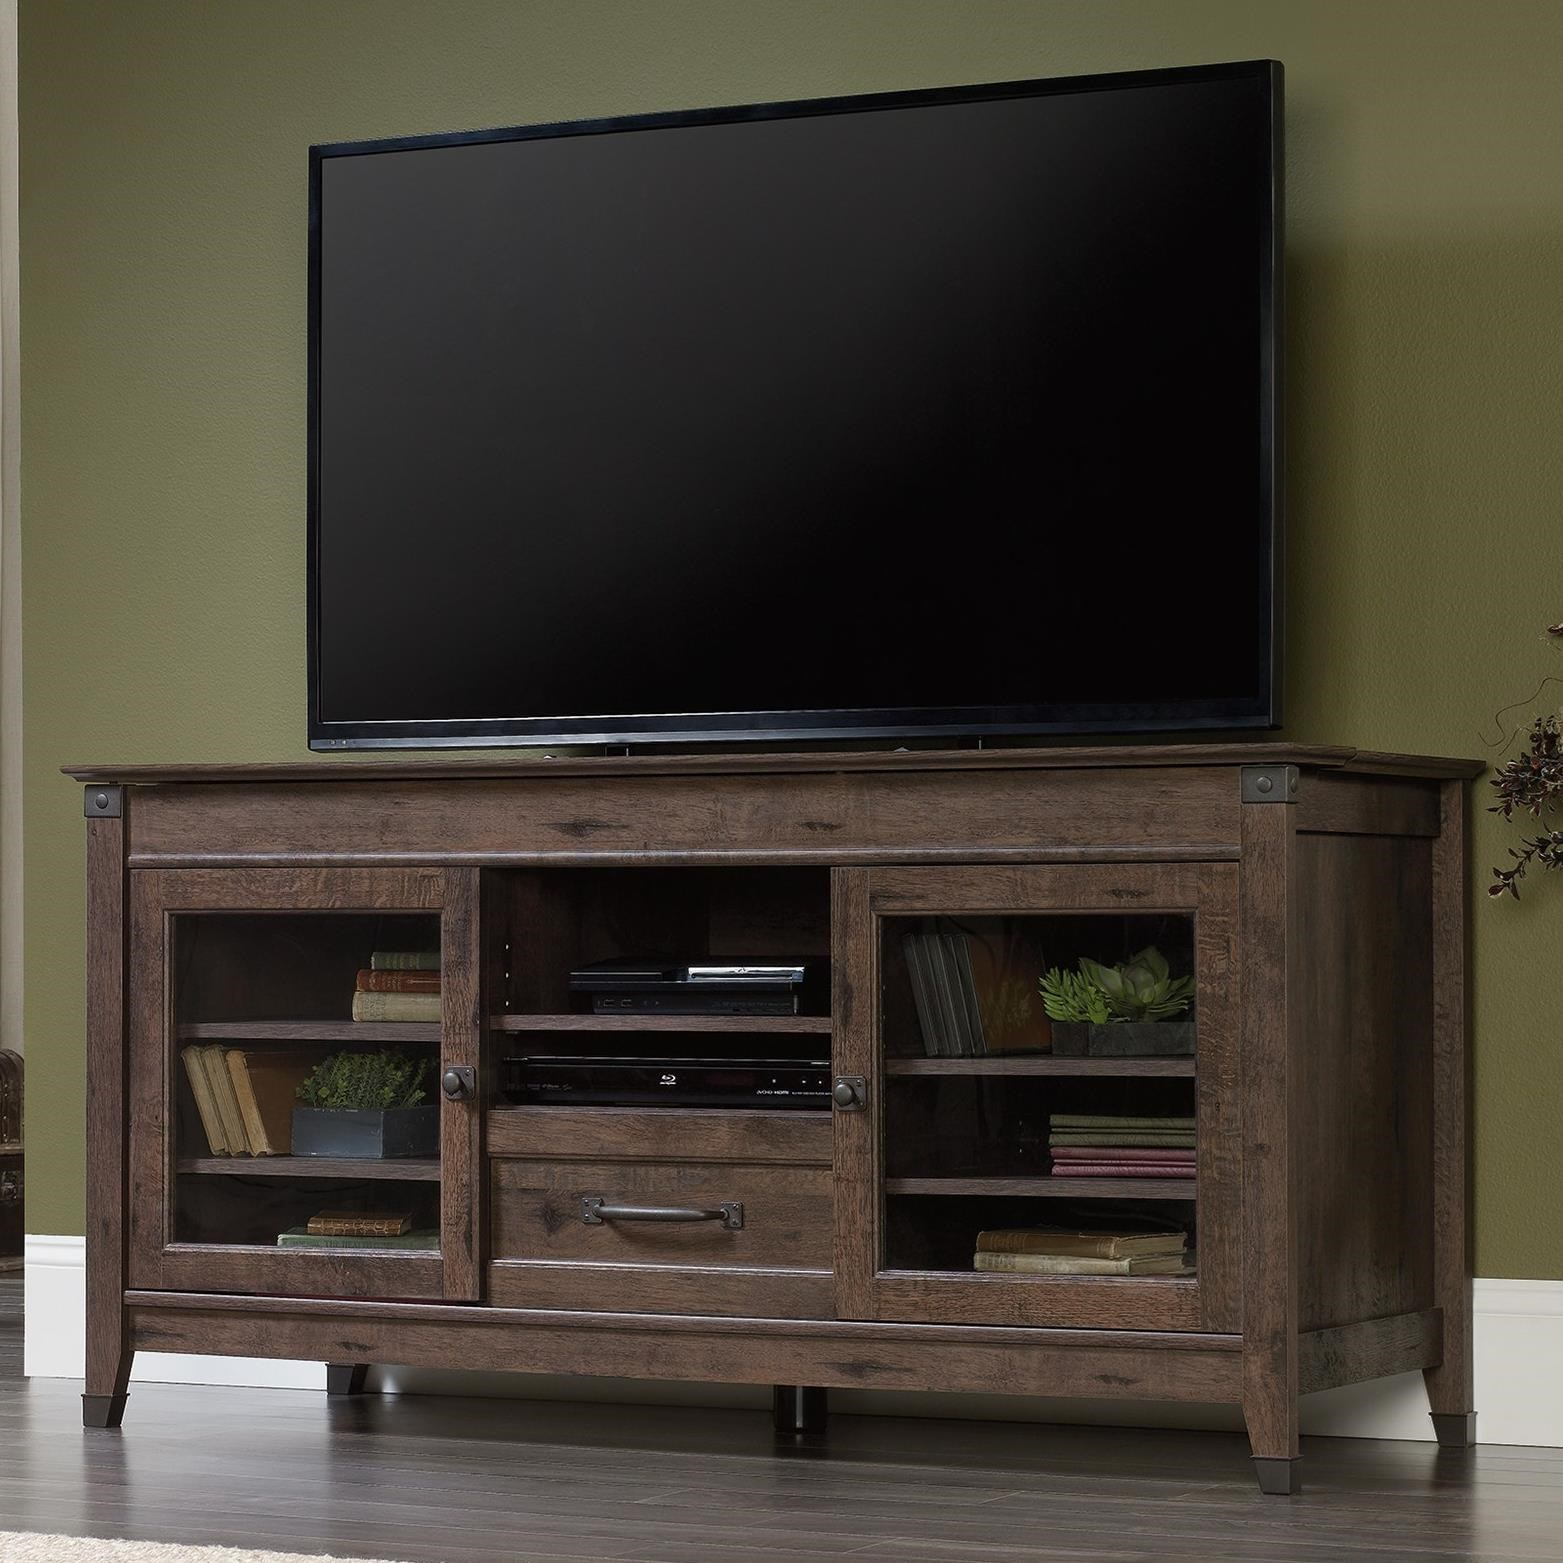 Sauder Carson Forge Rustic Style Entertainment Credenza